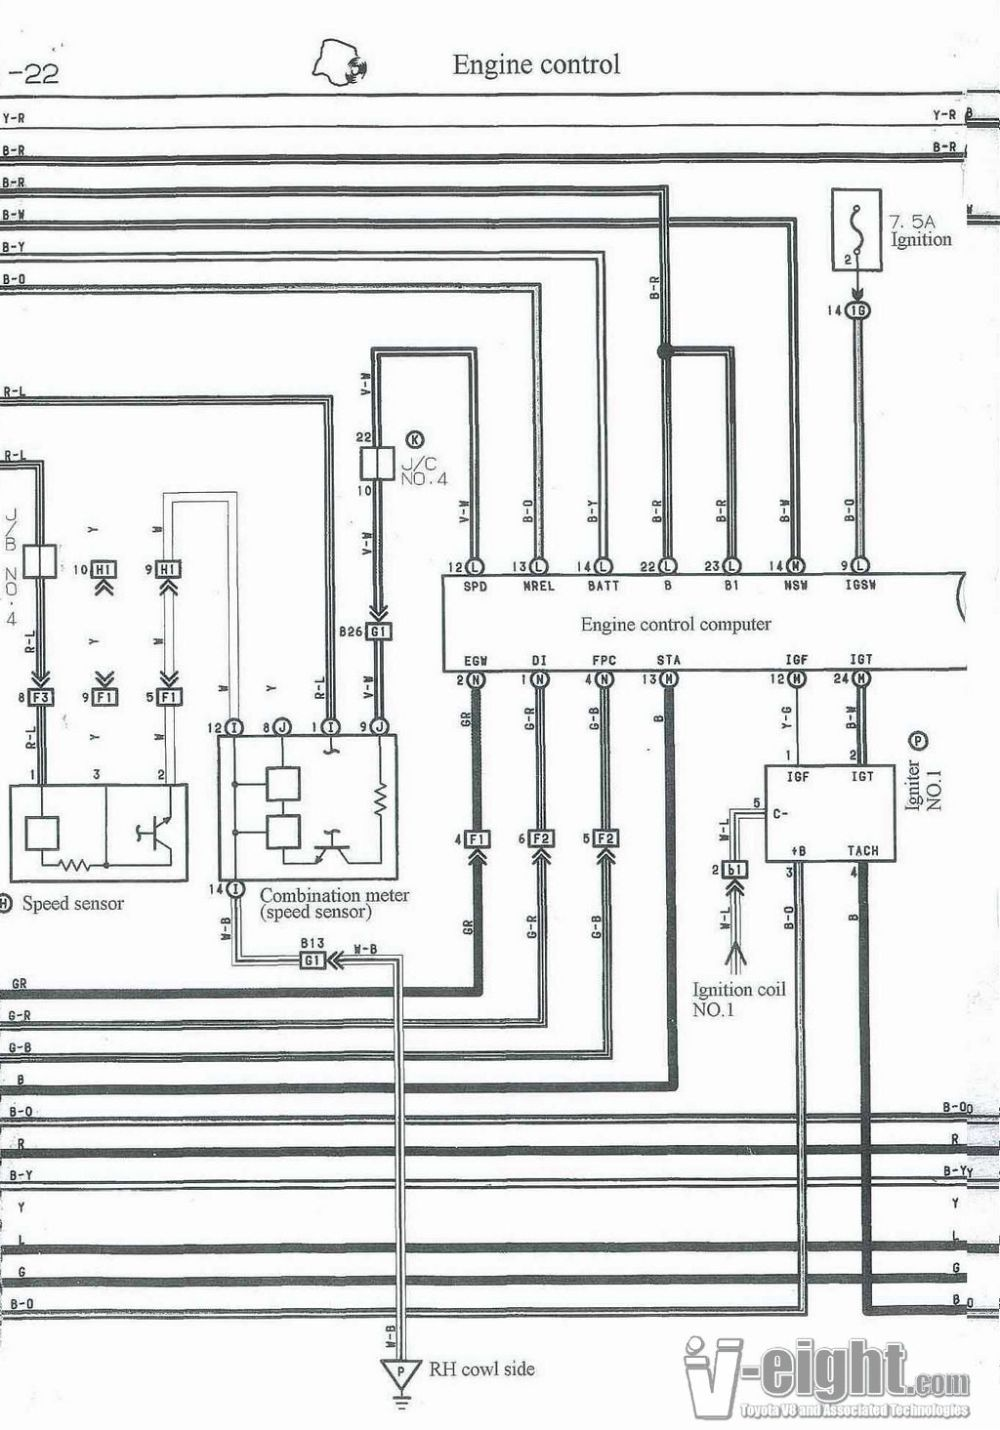 medium resolution of 1uzfe wiring diagram pdf wiring diagrams konsultwrg 1178 1uzfe wiring diagram 1uzfe vvti wiring diagram